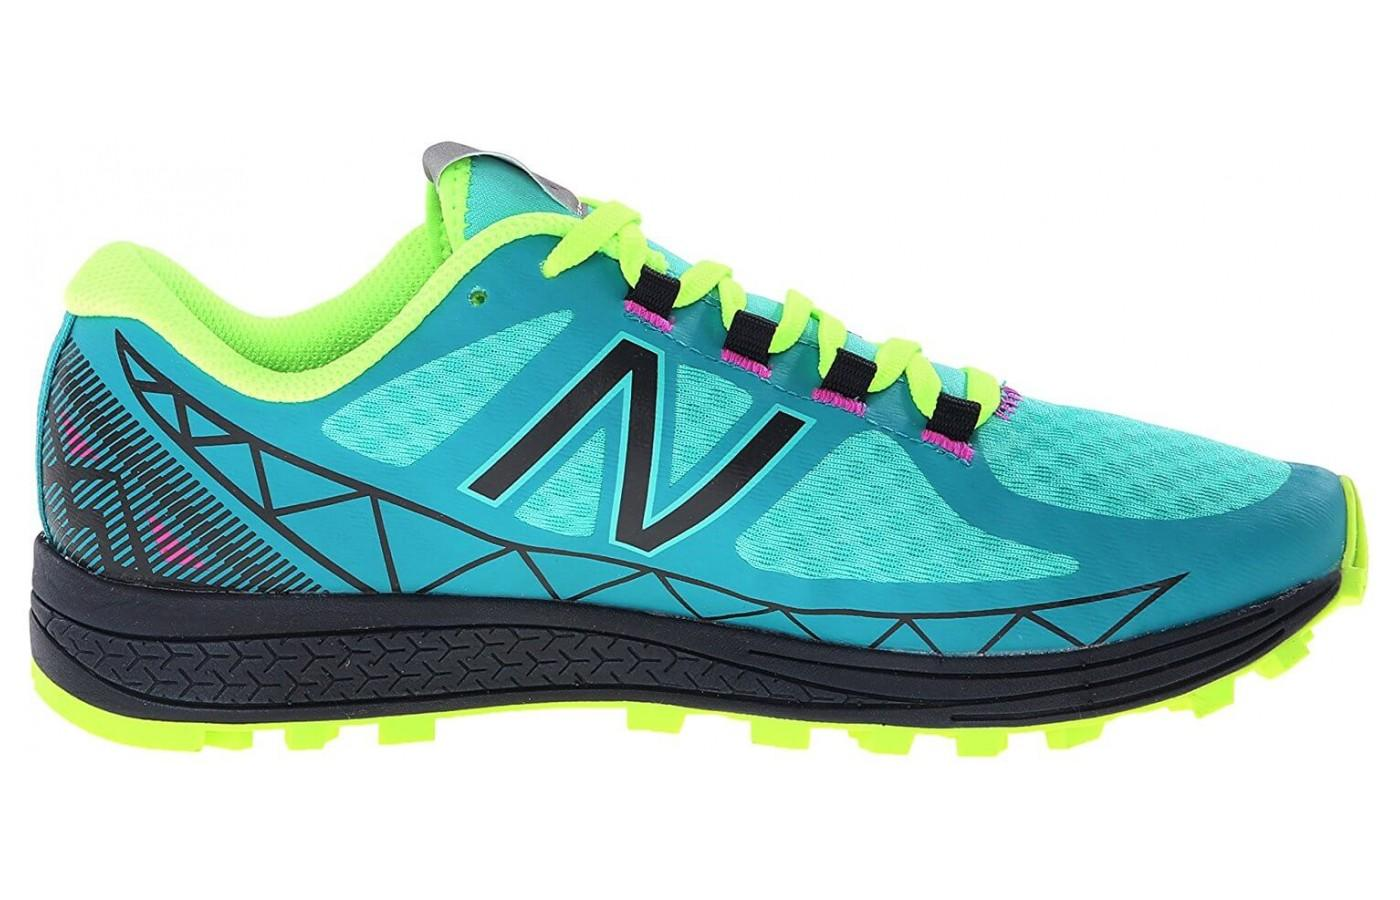 New Balance Vazee Summit for women as shown in reef/equinox